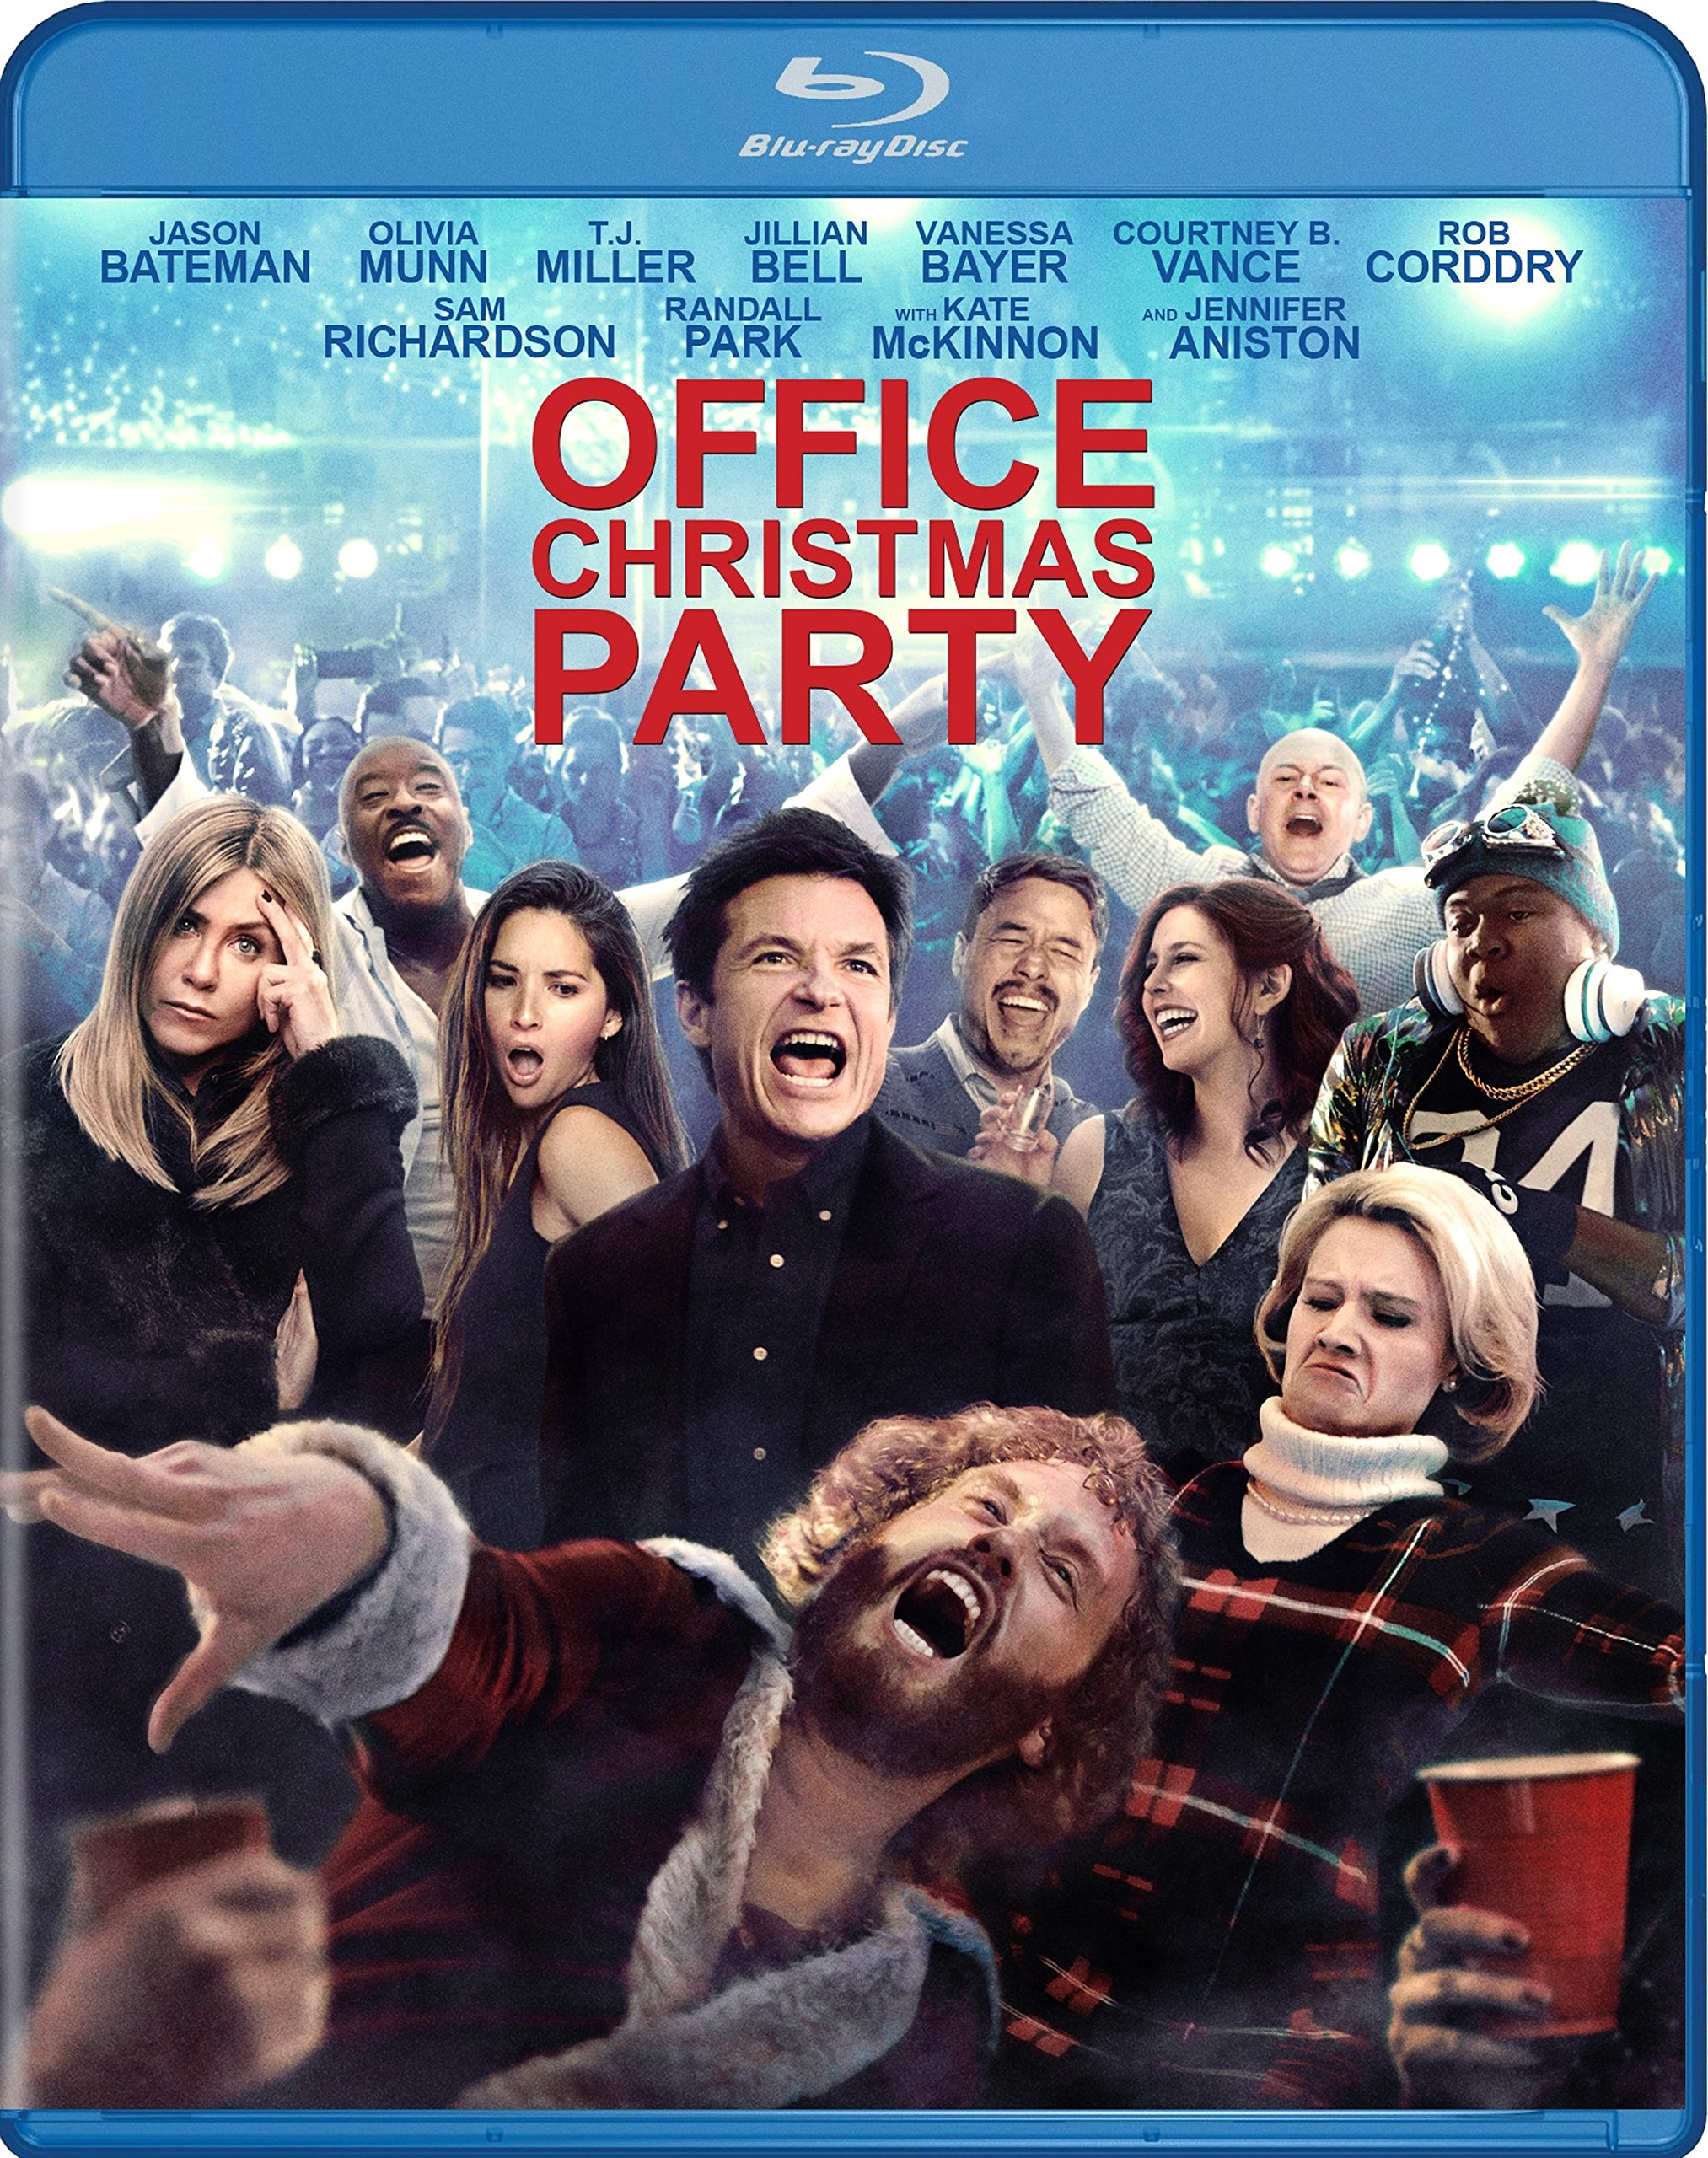 Blu-ray : Blu-ray : Office Christmas Party (With DVD, 2 Pack, Digitally Mastered in HD, Widescreen, Digital Theater System) (US.ME|C1|X.3.19-4.59-B01LTHZX6I.3244)